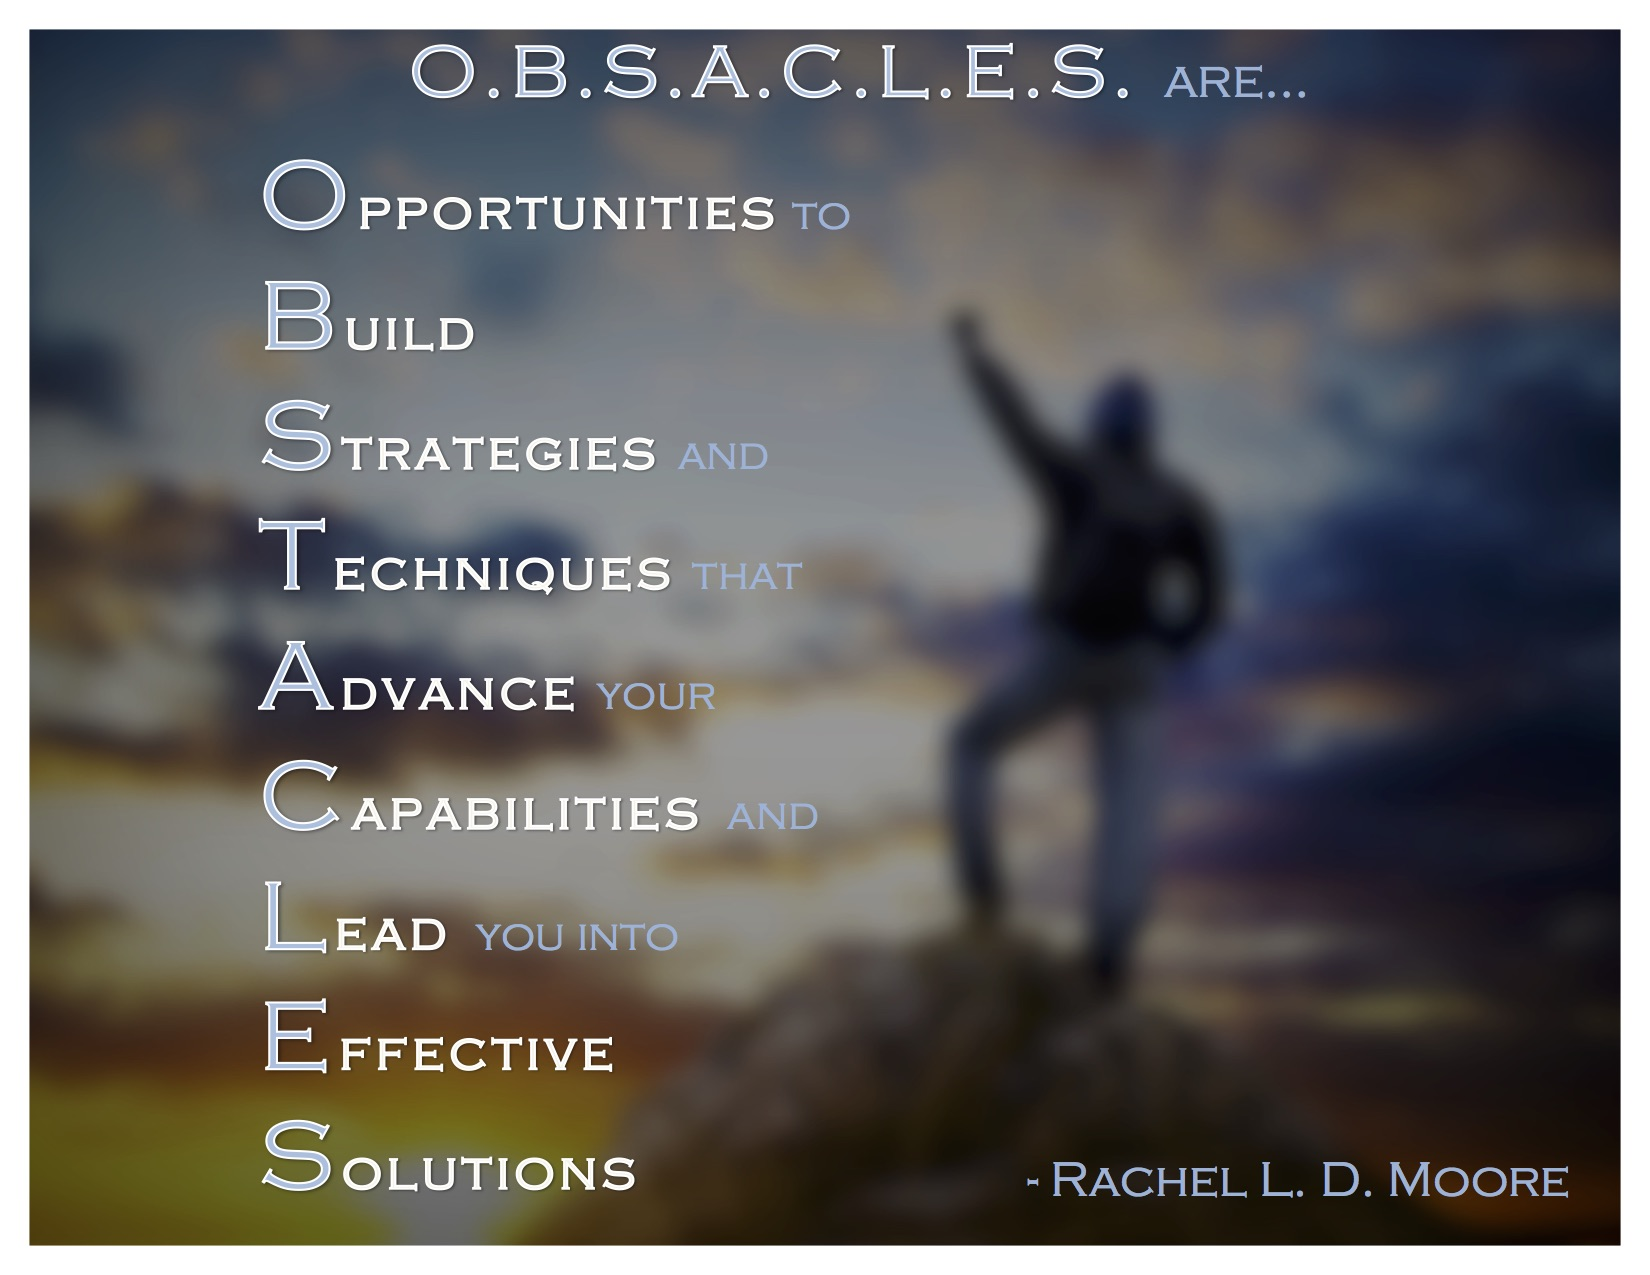 Obstacles, Obstacles create Opportunities